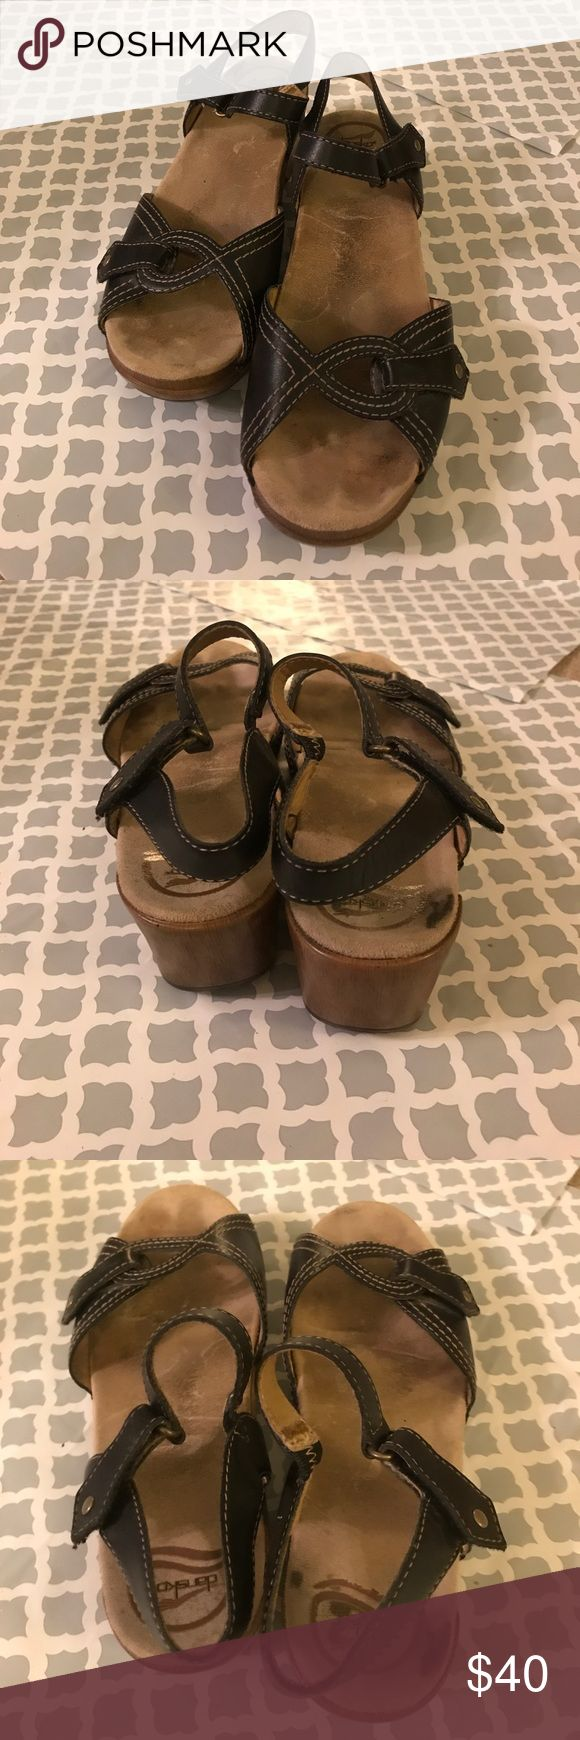 Dansko sandals Used and has some markings, but still a great pair of shoes!!! Leather upper lining. Dansko Shoes Sandals